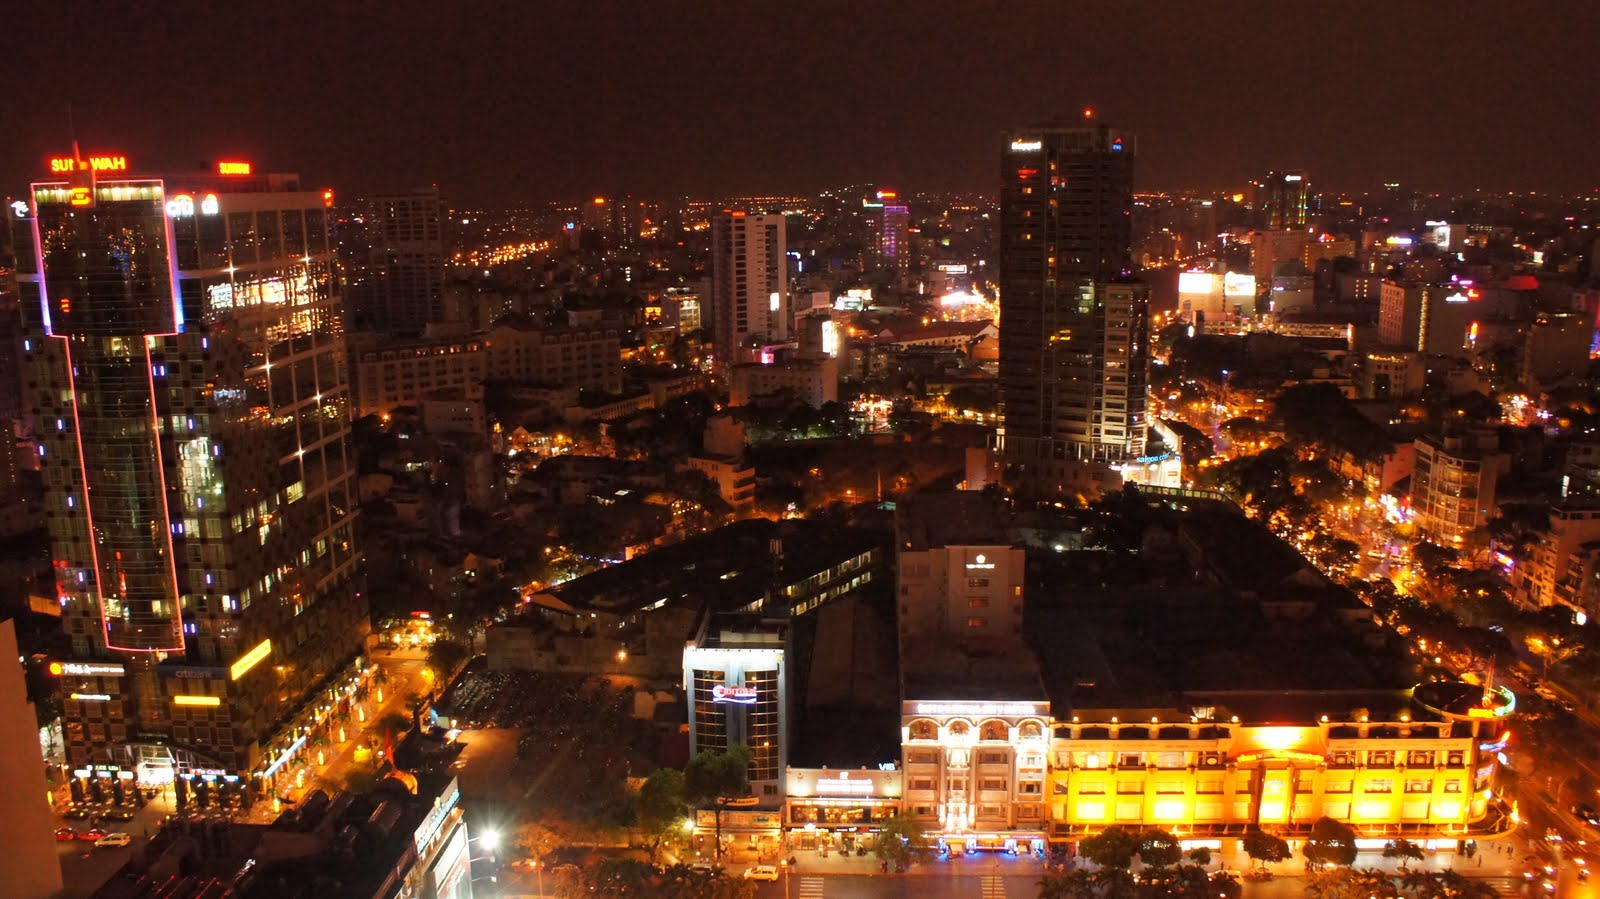 Ho Chi Minh City From The Sheraton Tower. 1600 x 899.Happy New Year Lovers Christian Birthday Wishes Blessings